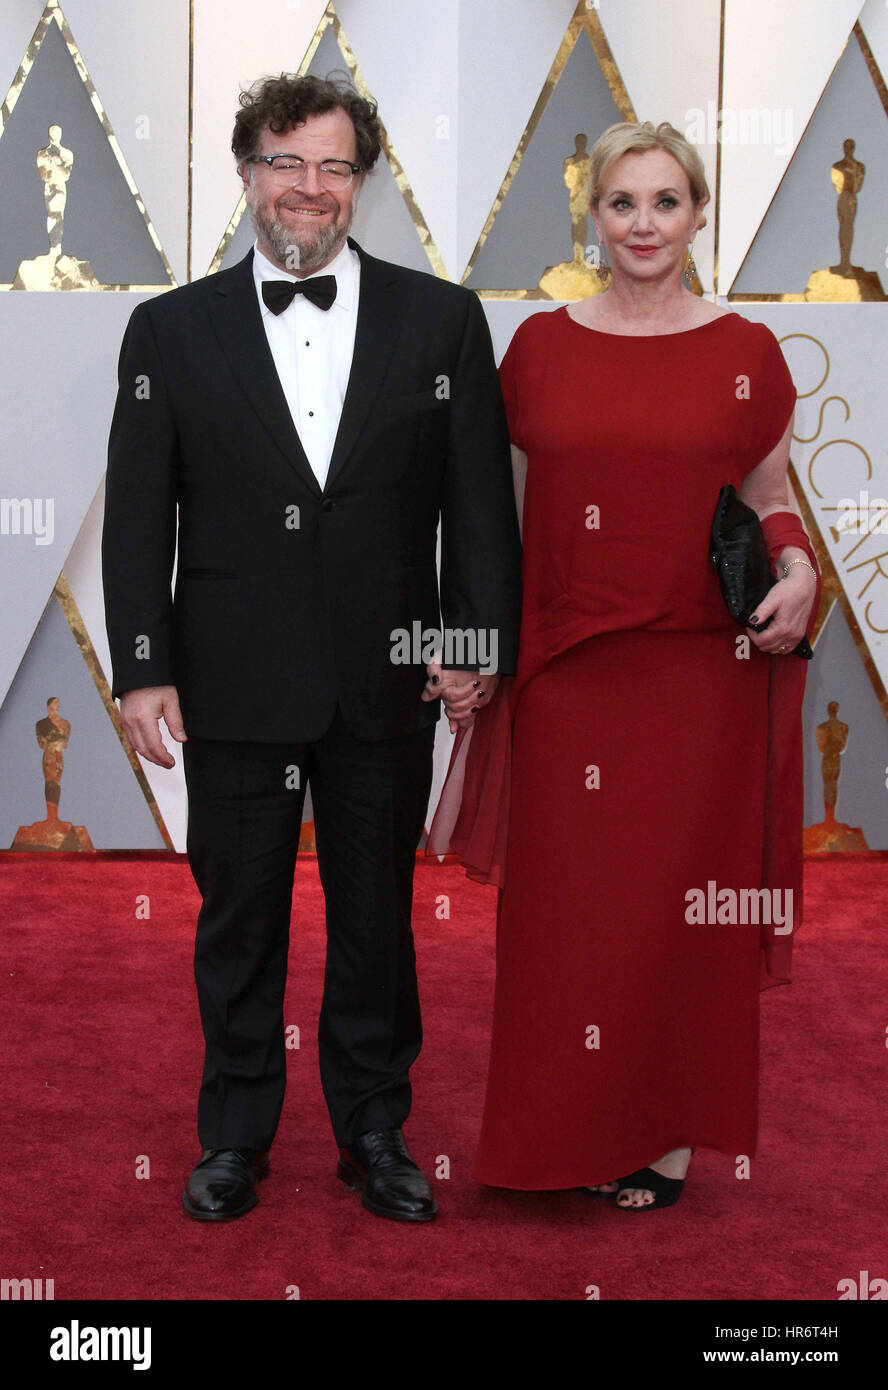 Hollywood, USA. 26th Feb, 2017. J. Smith-Cameron, Kenneth Lonergan. 89th Annual Academy Awards presented by the - Stock Image